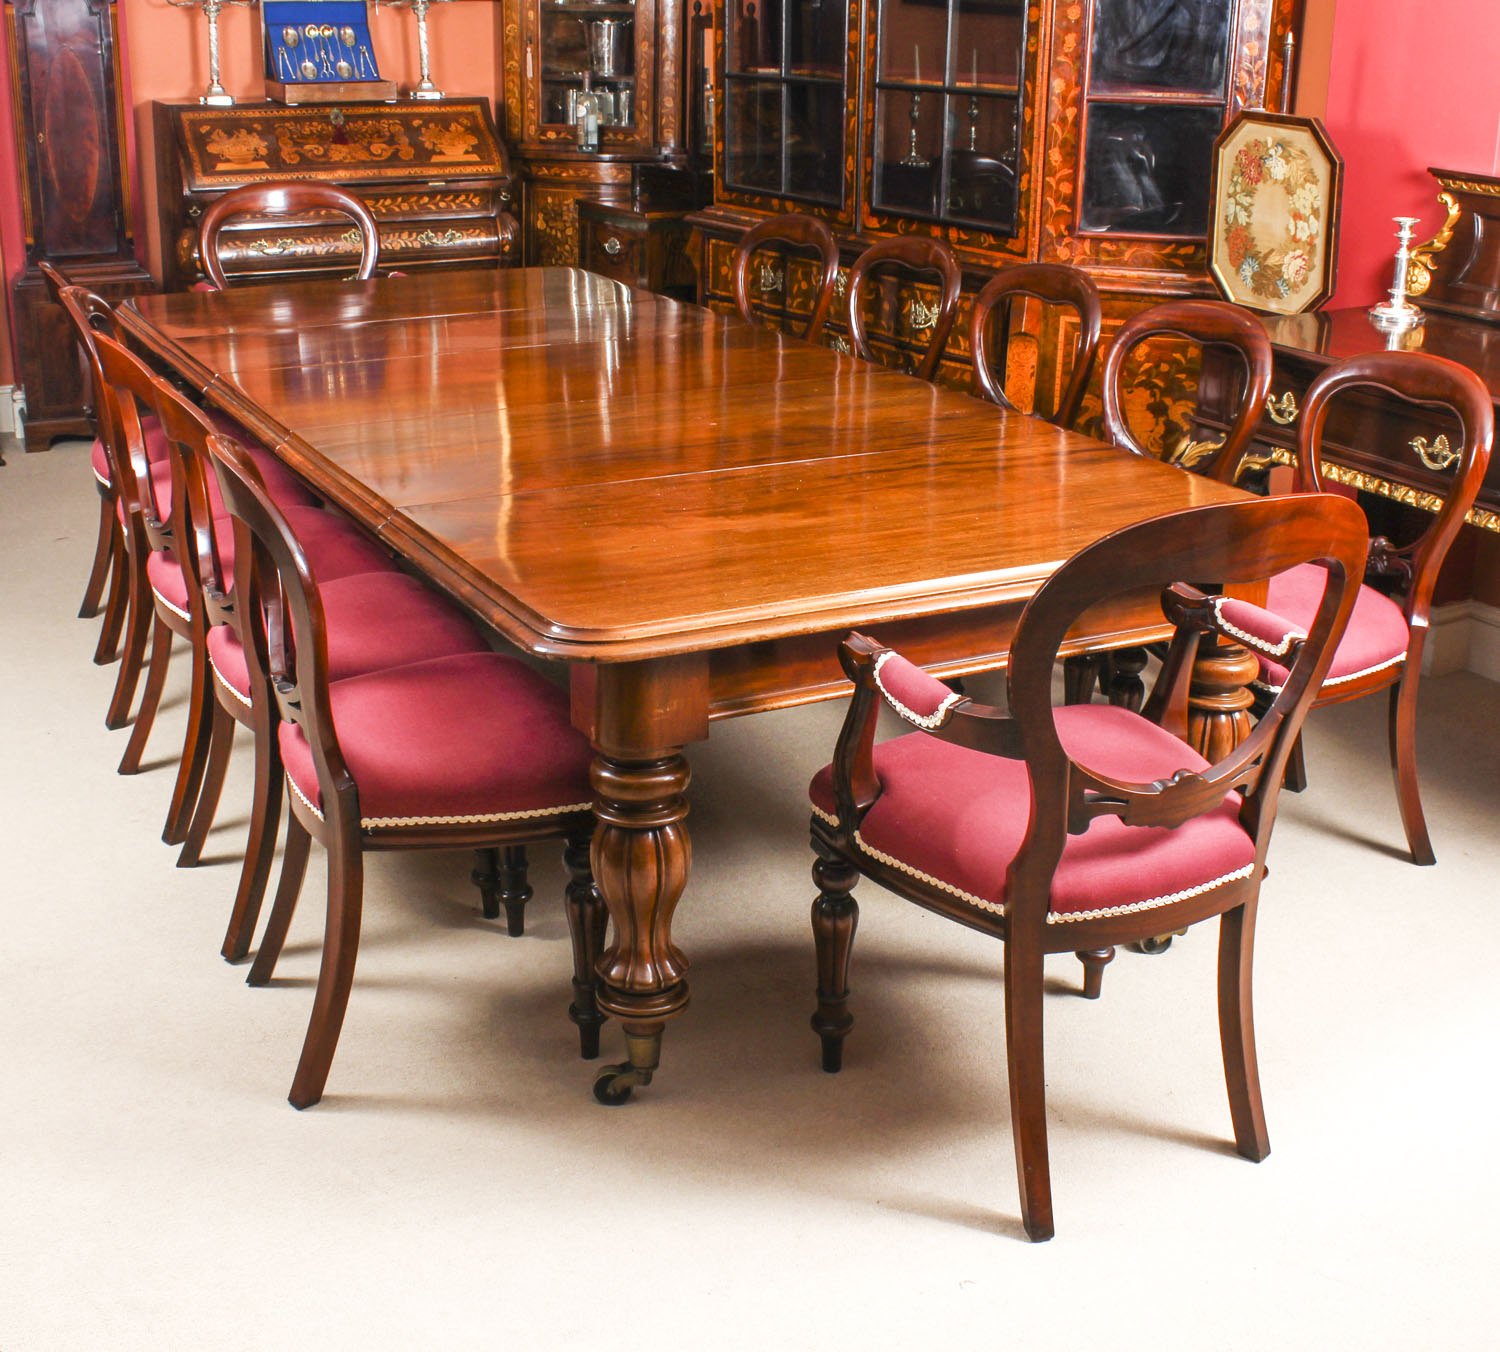 12 Foot Dining Room Tables: Antique 10 Ft Flame